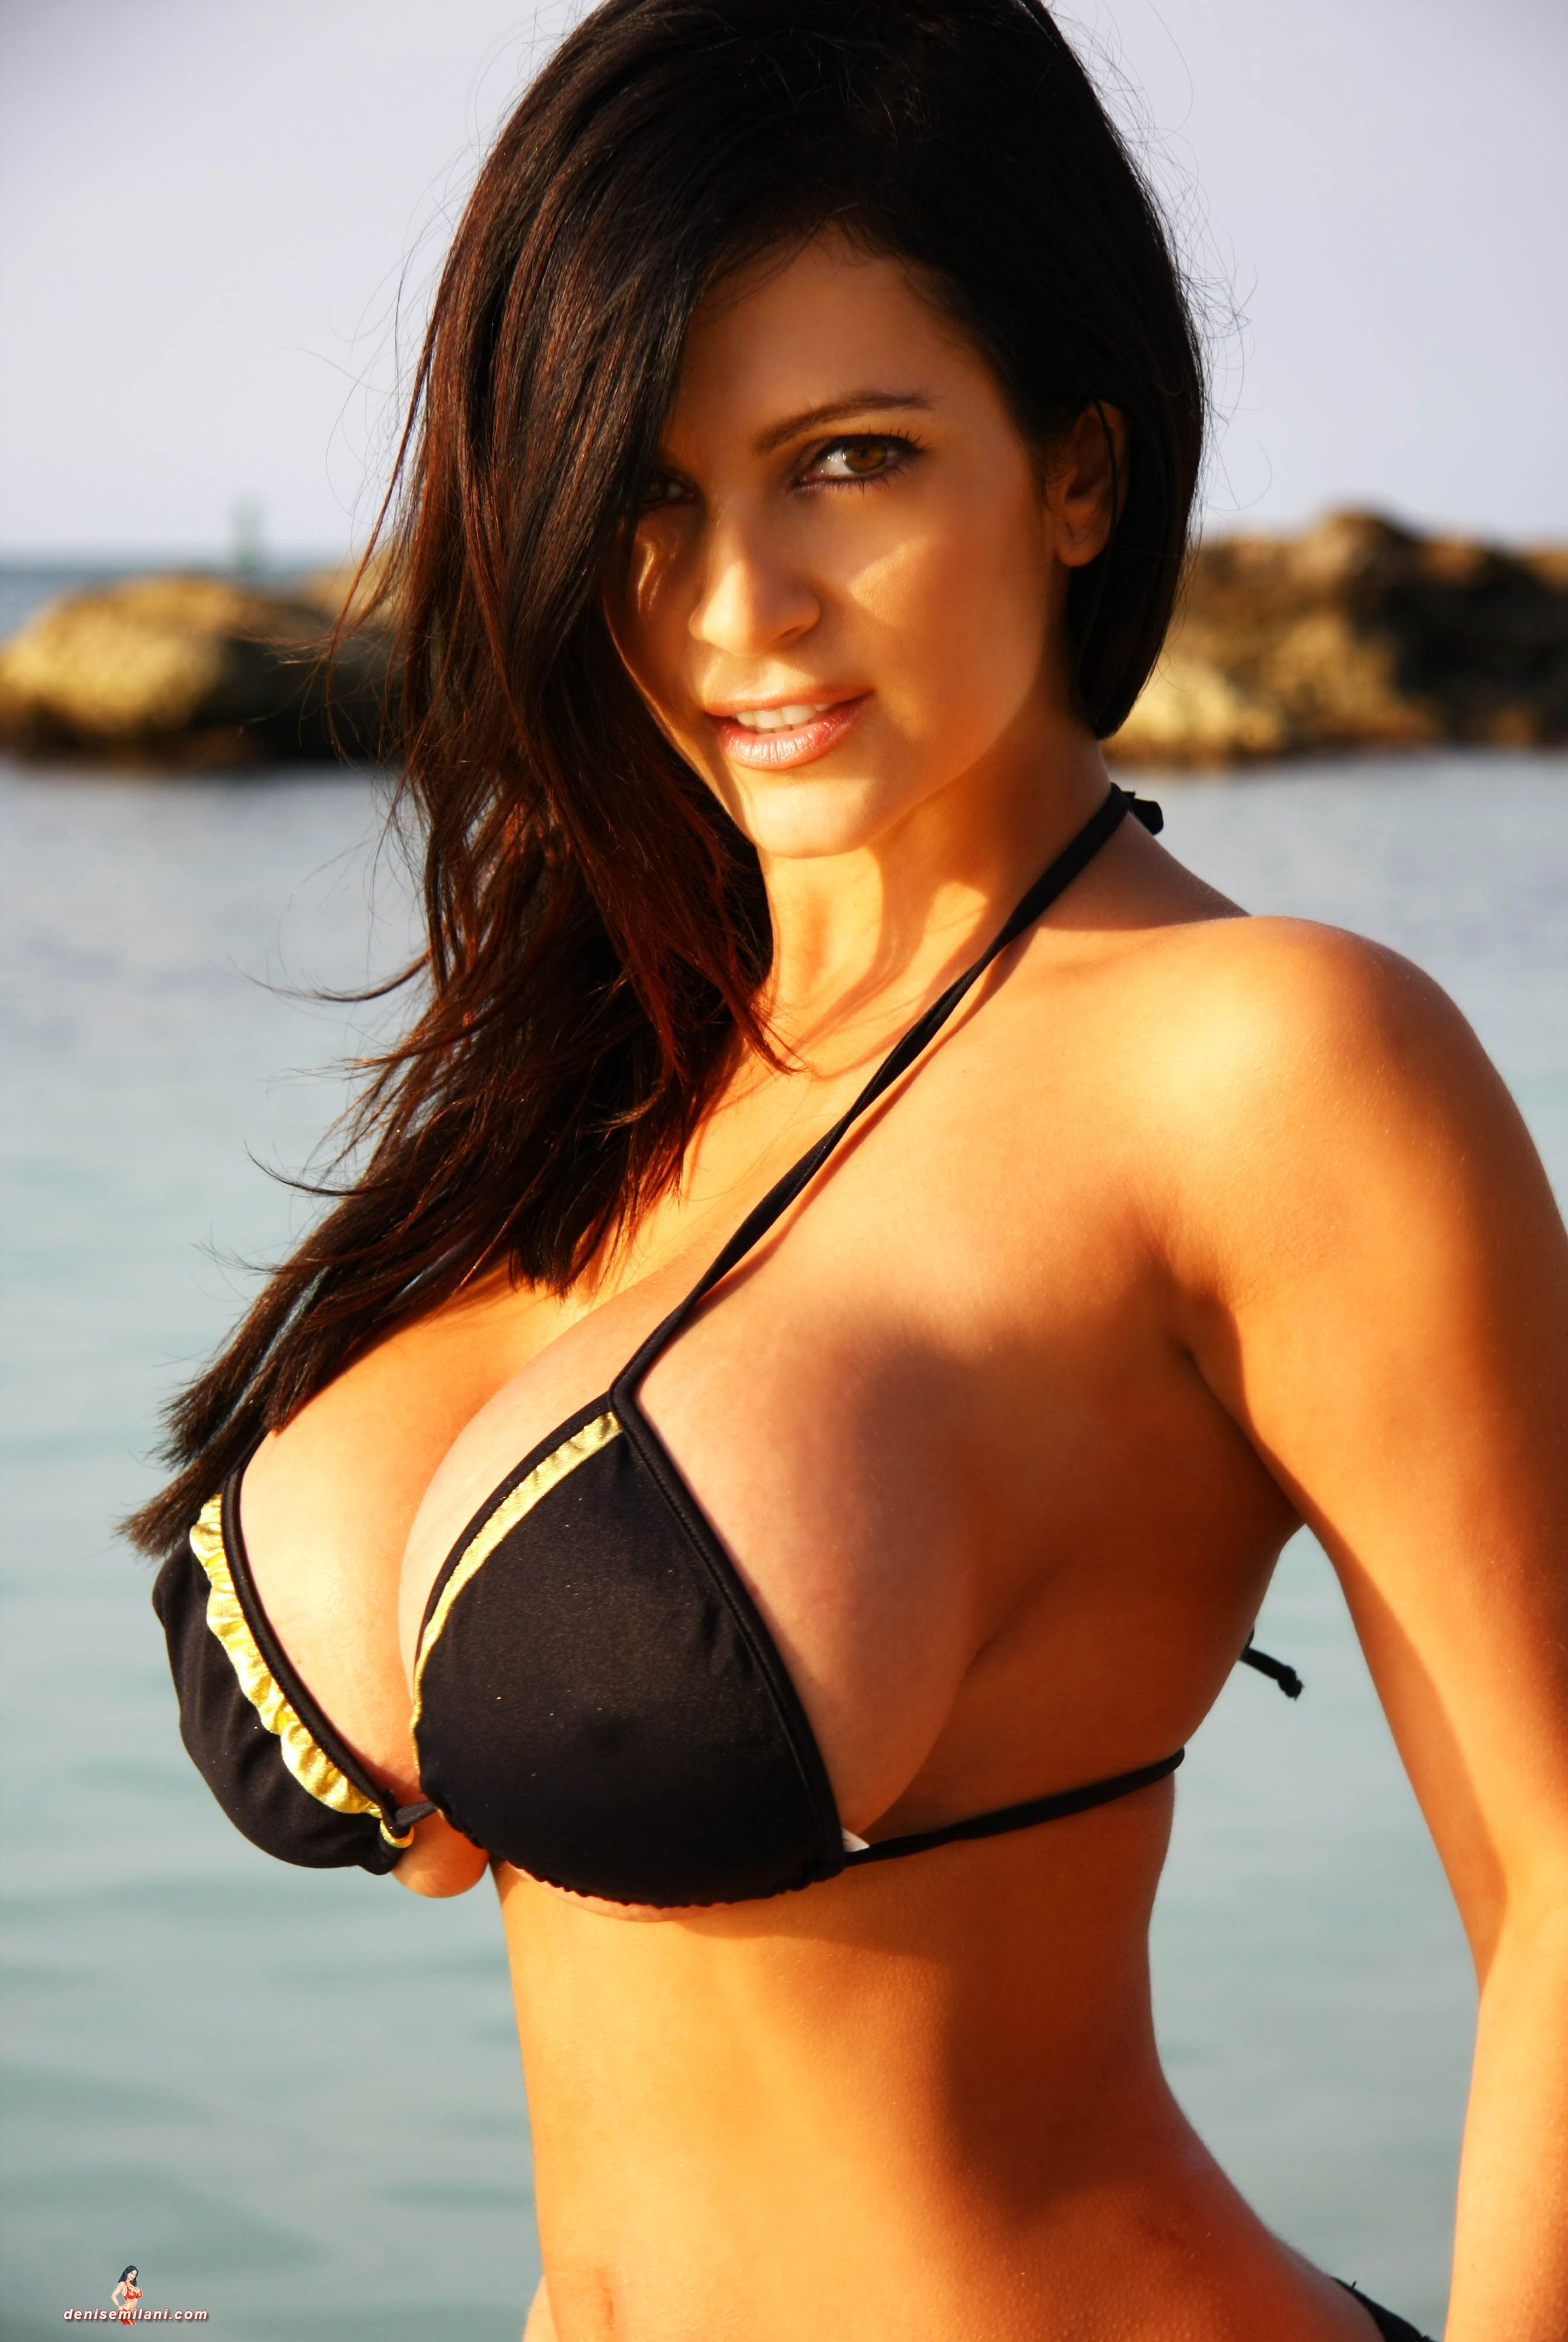 My all time favorite Denise Milani pic. Her perfect tits squeezed into a  way to small bikini top and shot from the side close-up is just amazingly  sexy!